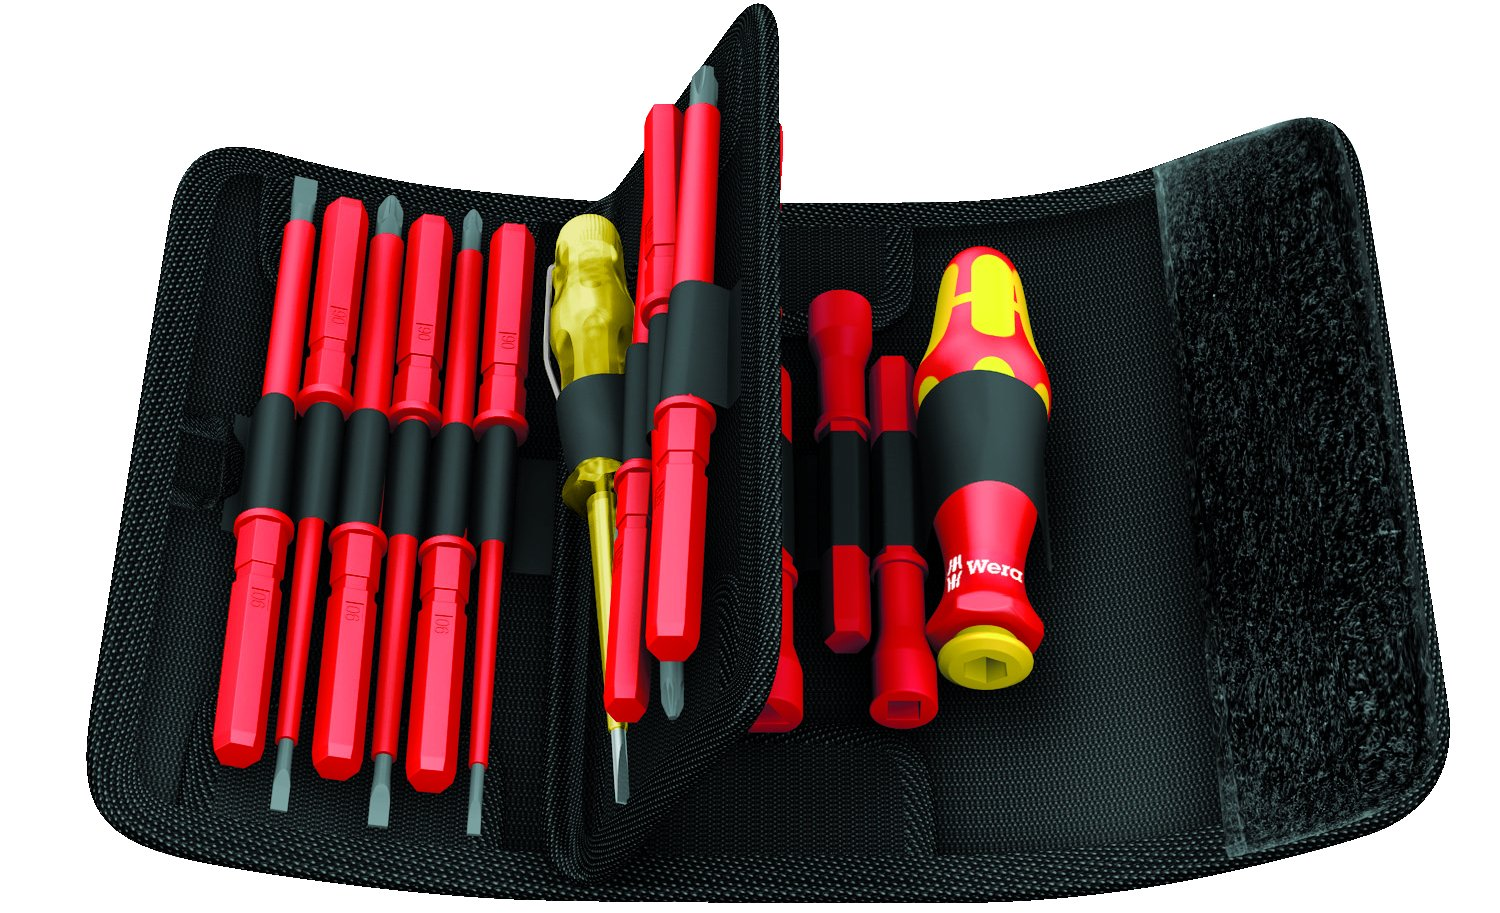 Wera KK VDE 60i/62i/68i/18 Insulated Pouch Set with Interchangeable Blades, 18-Piece